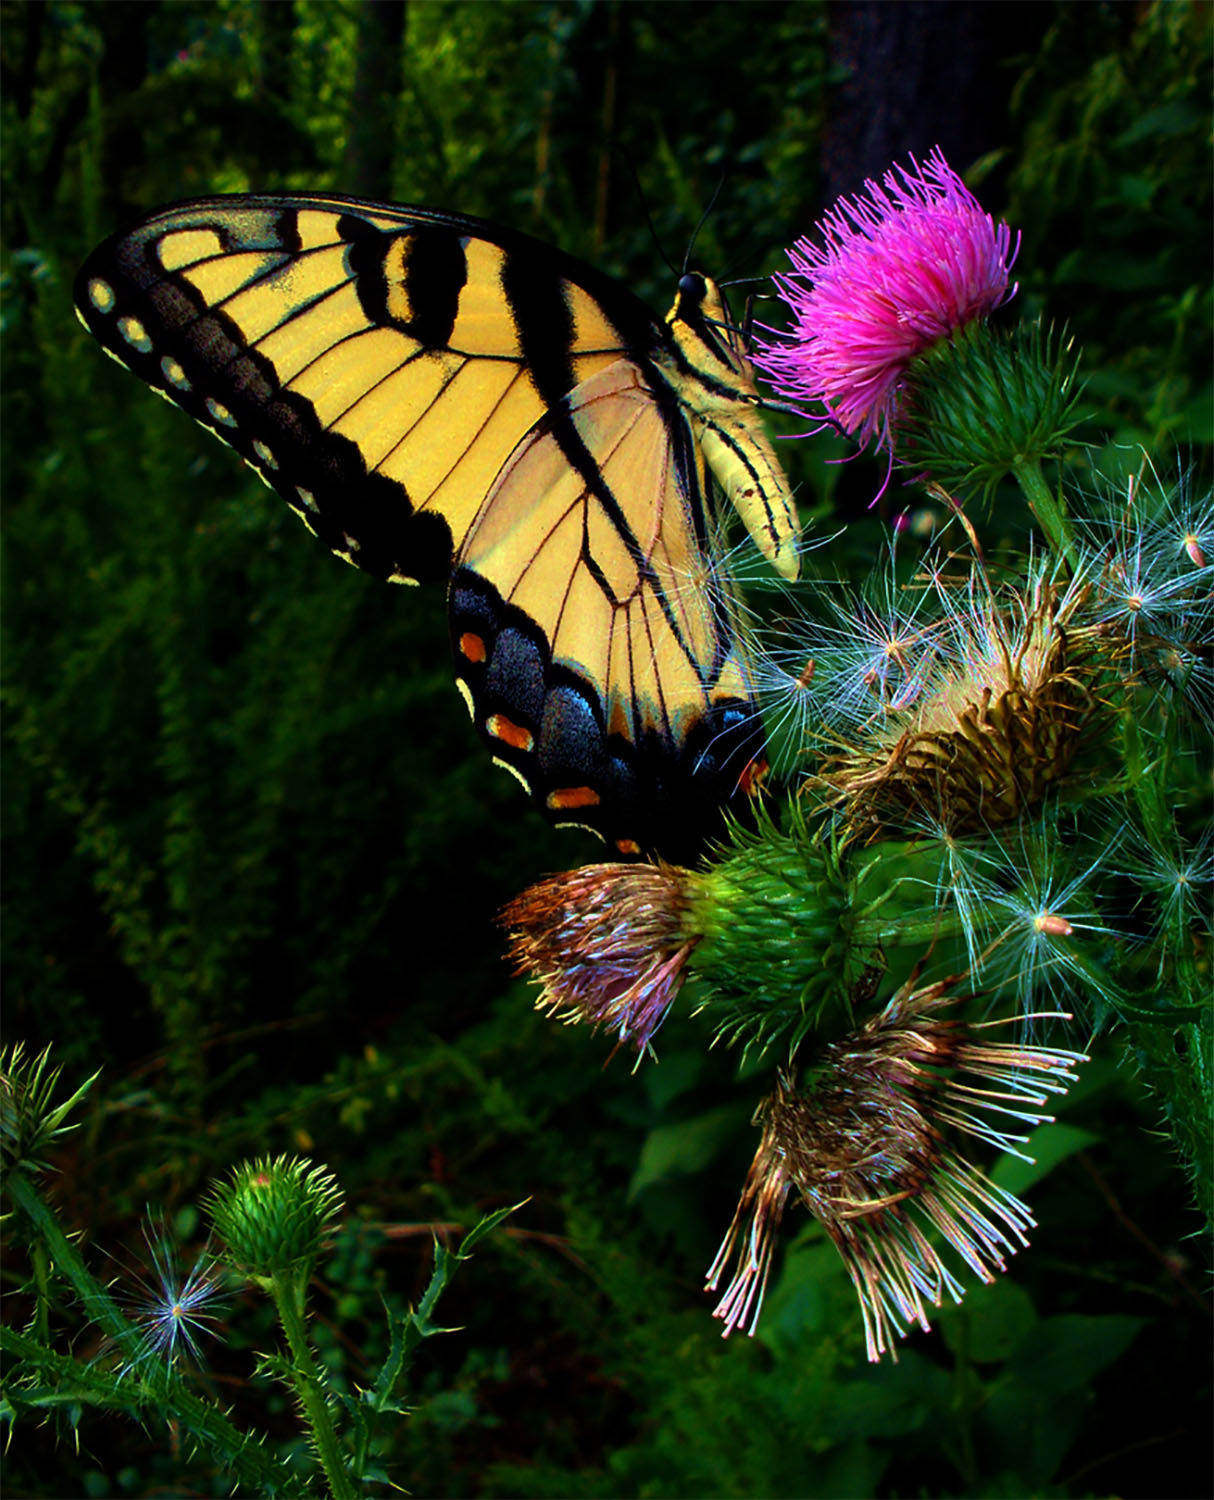 19. butterfly on nectar, by k. bos